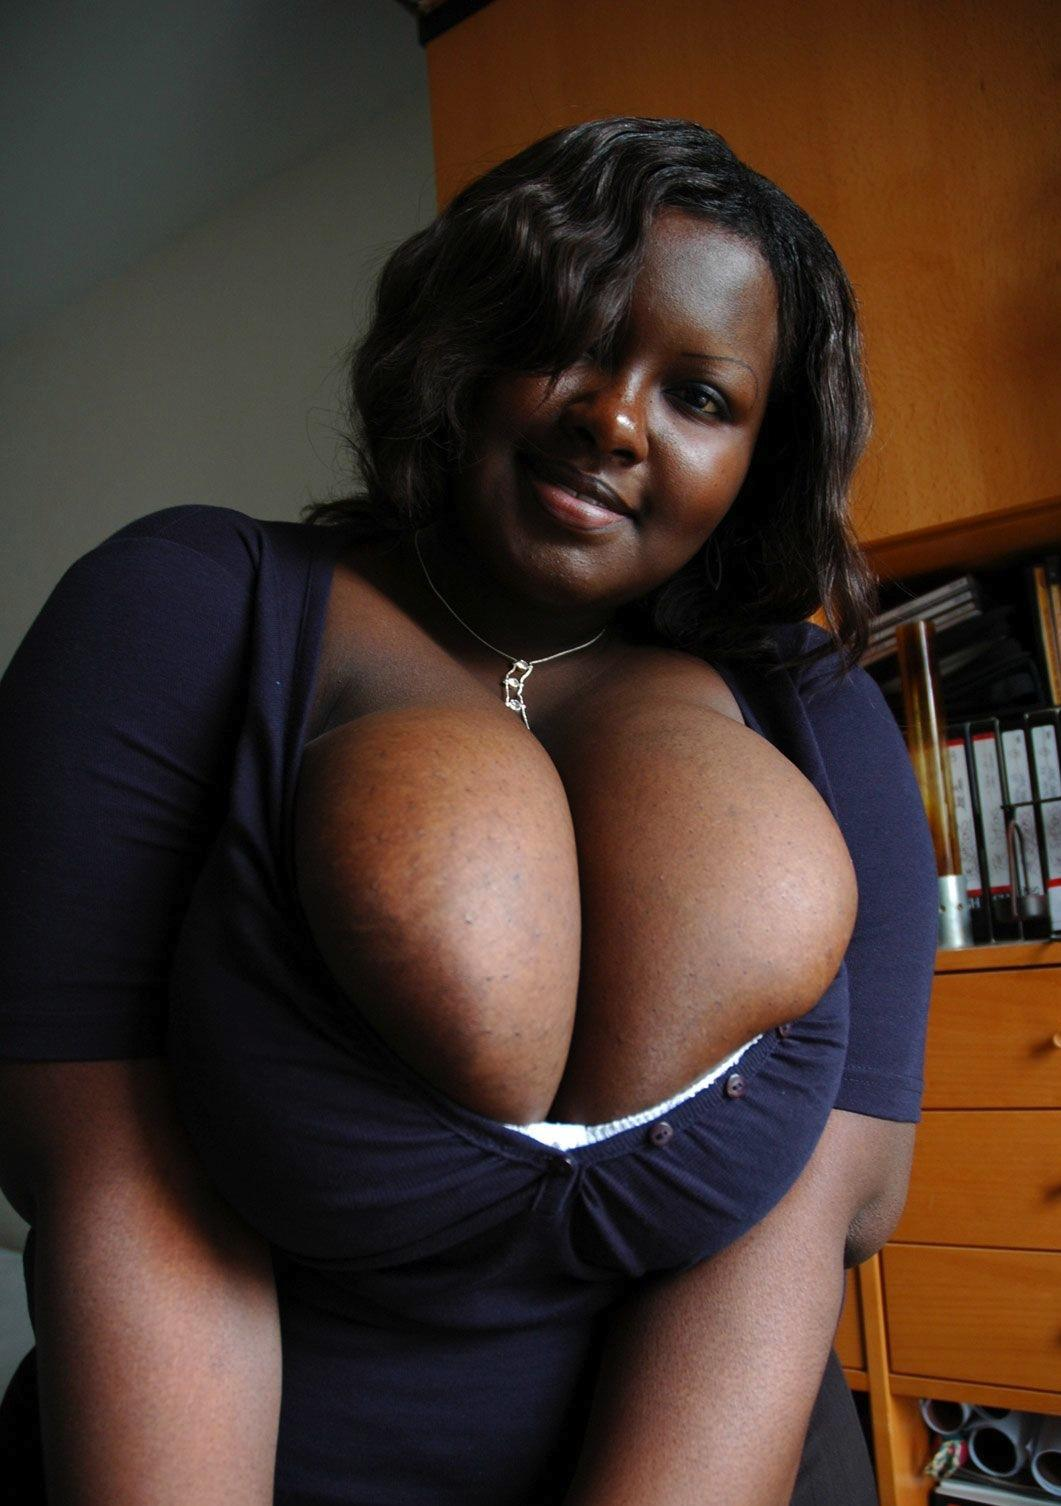 free-picture-of-big-black-boobs-xxx-monky-with-woman